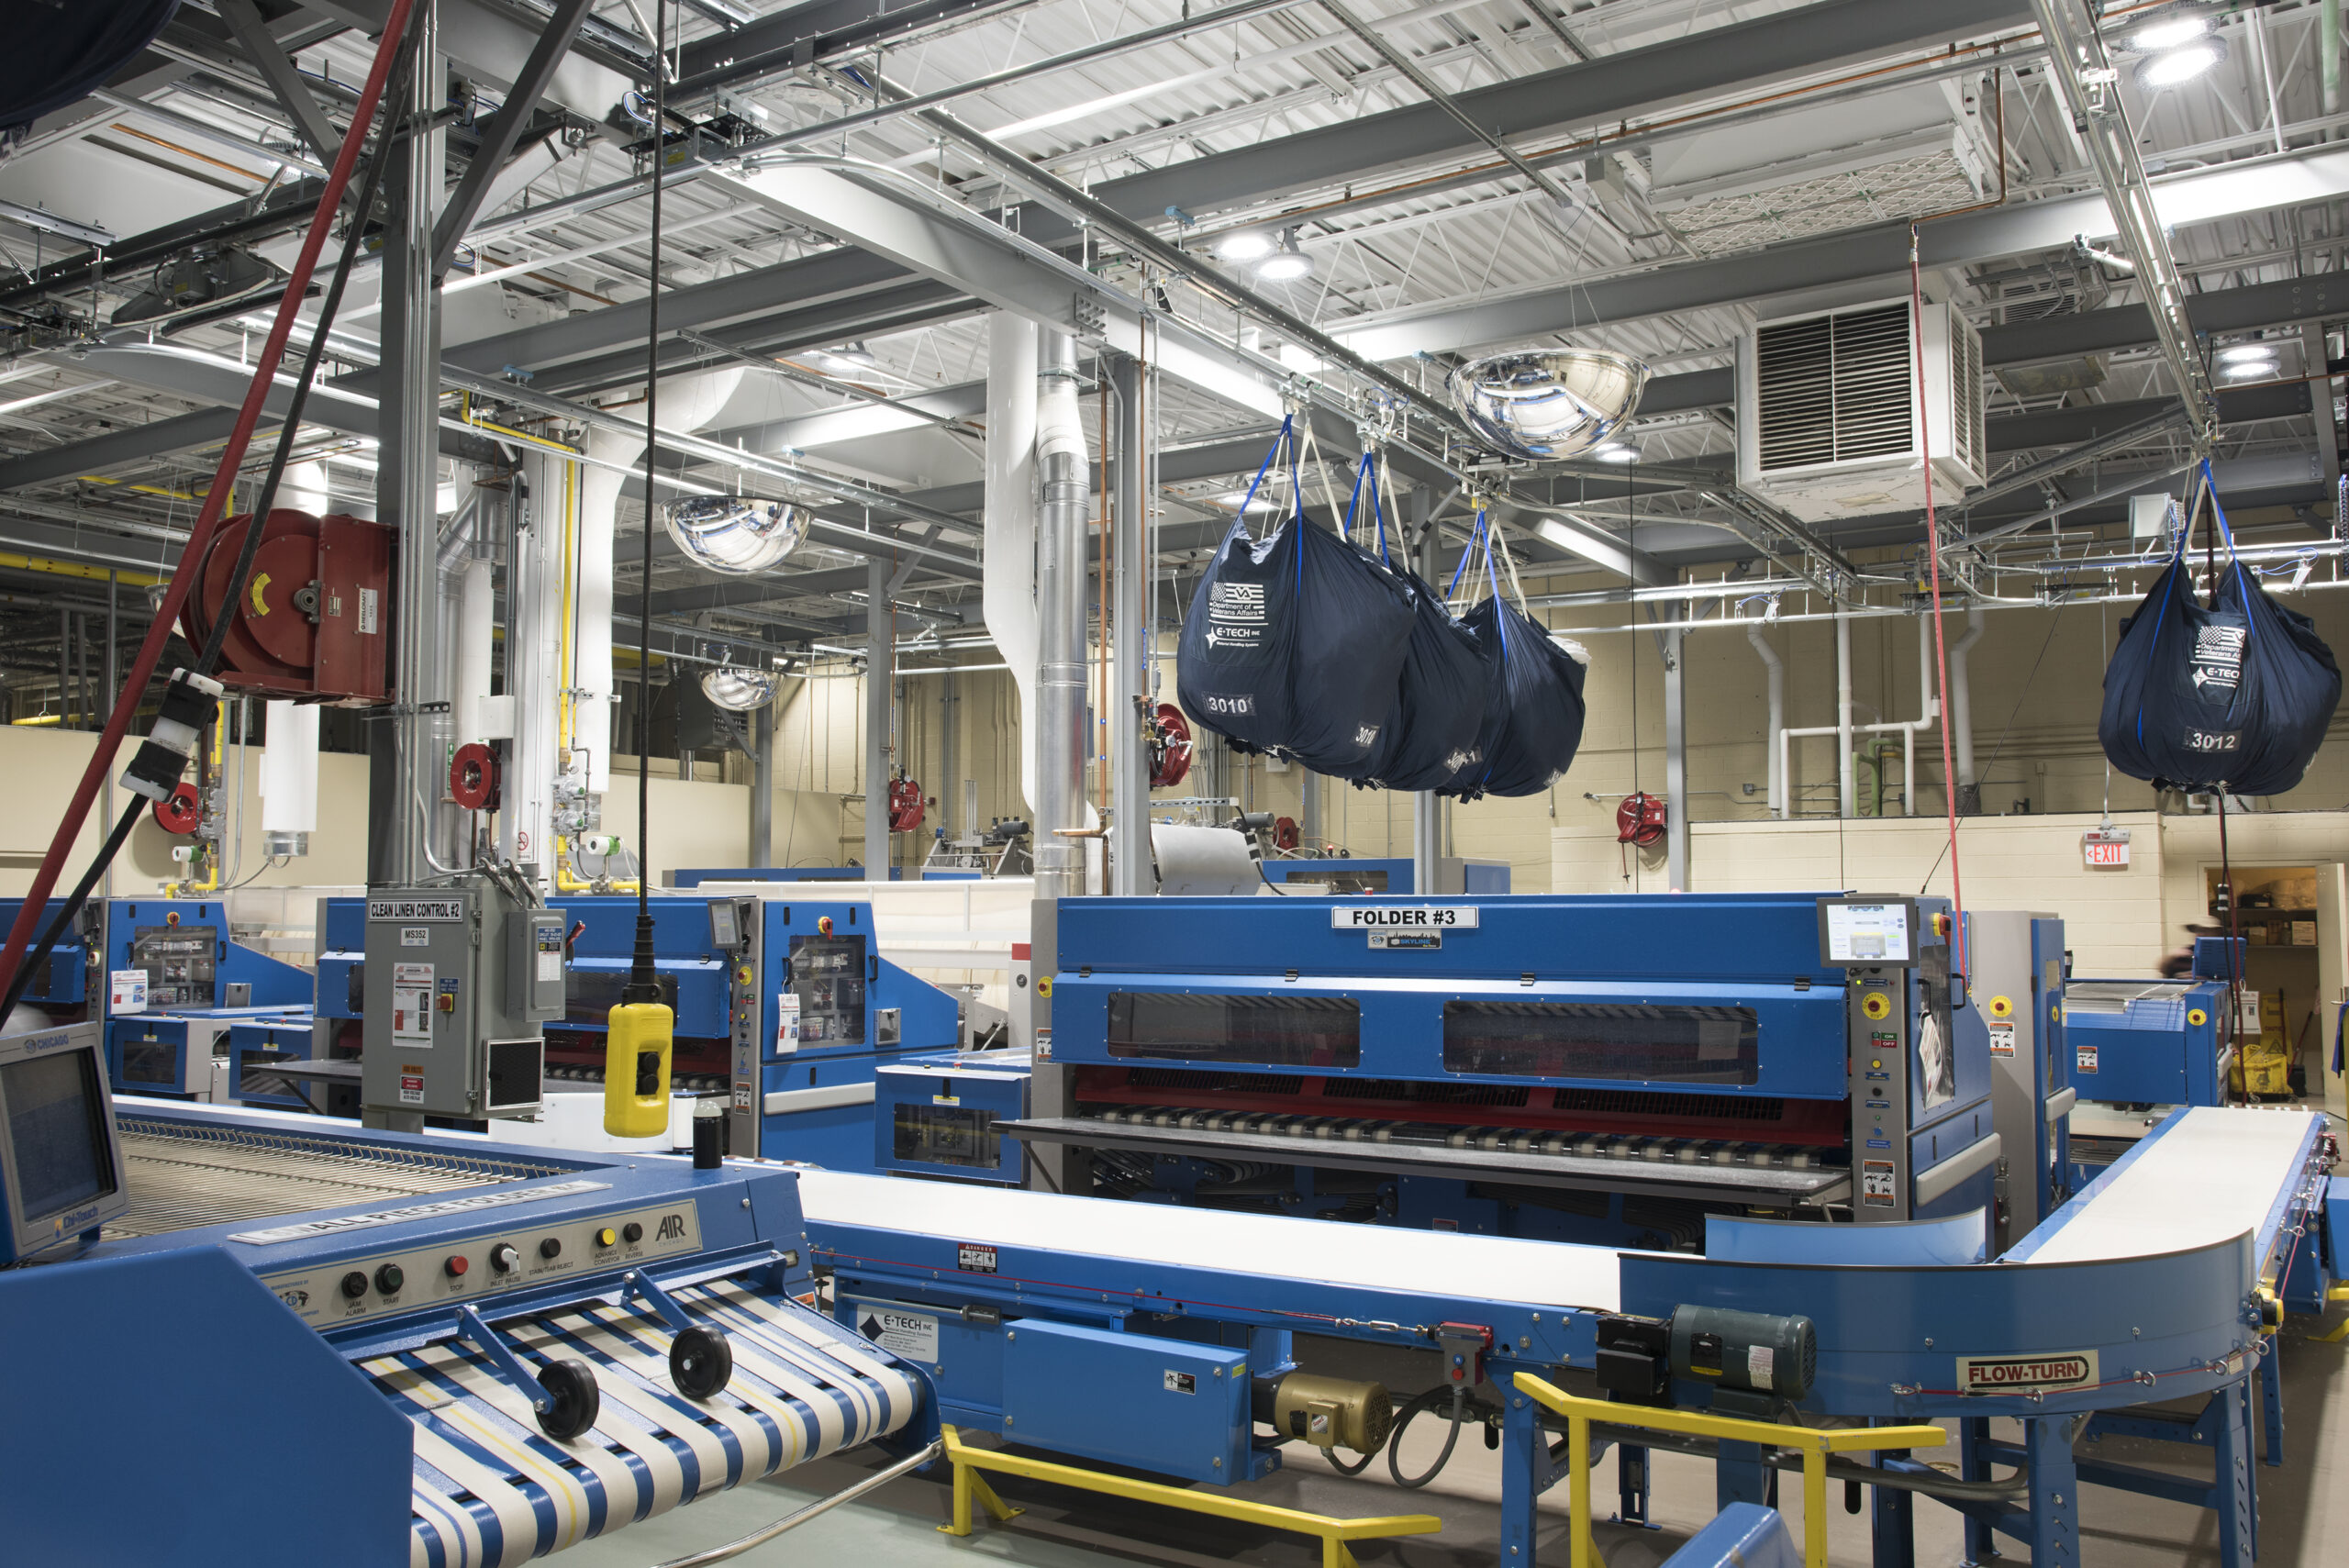 Top 5 Benefits of Choosing a Used Industrial Laundry Machine